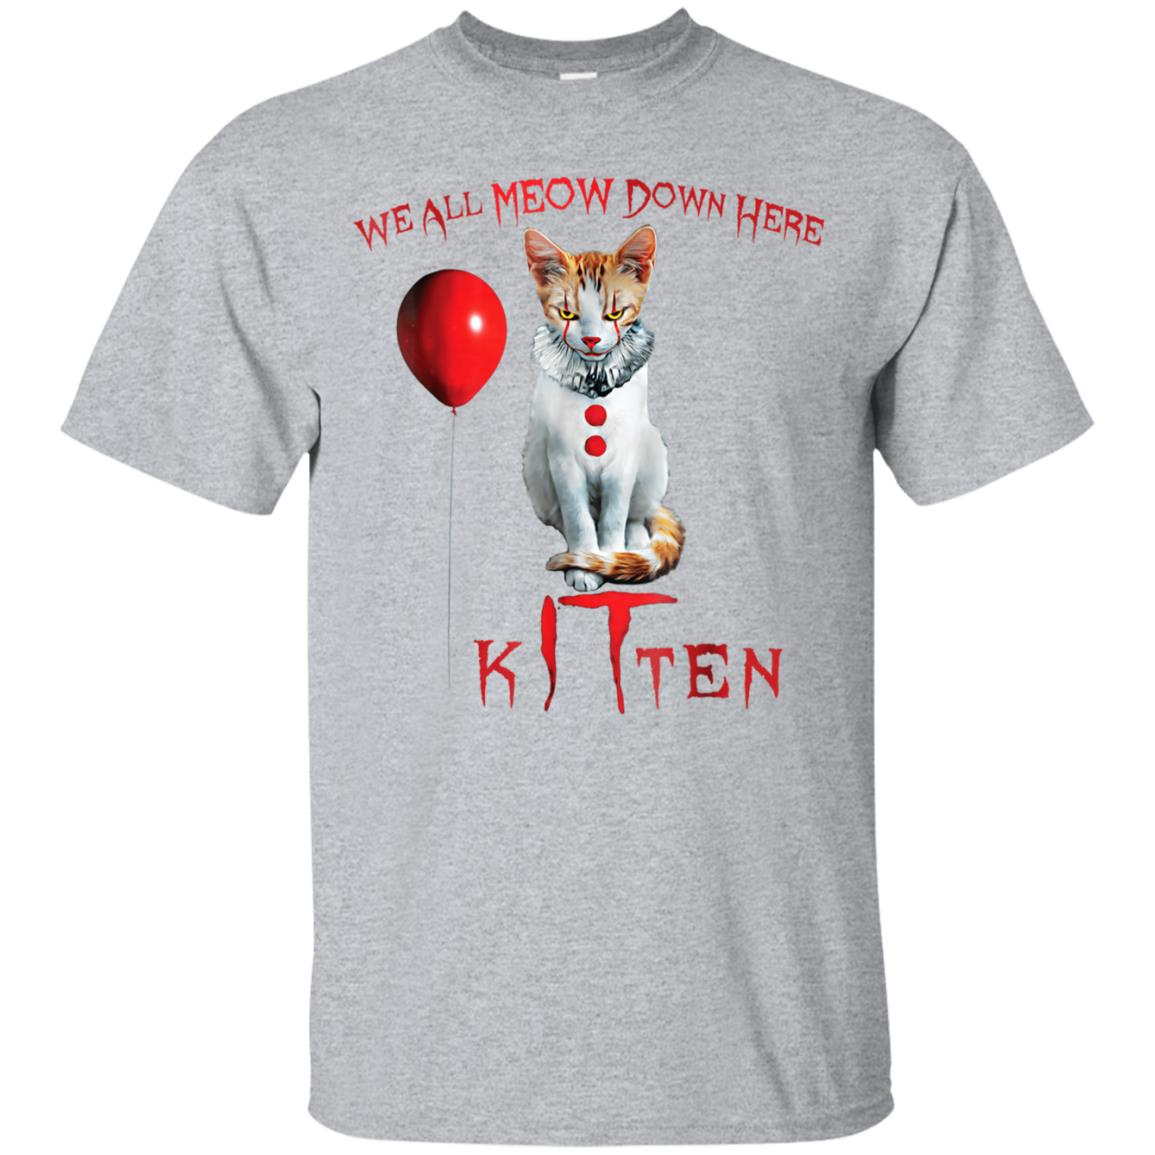 We All MEOW Down Here Clown Cat Kitten T-Shirt 99promocode